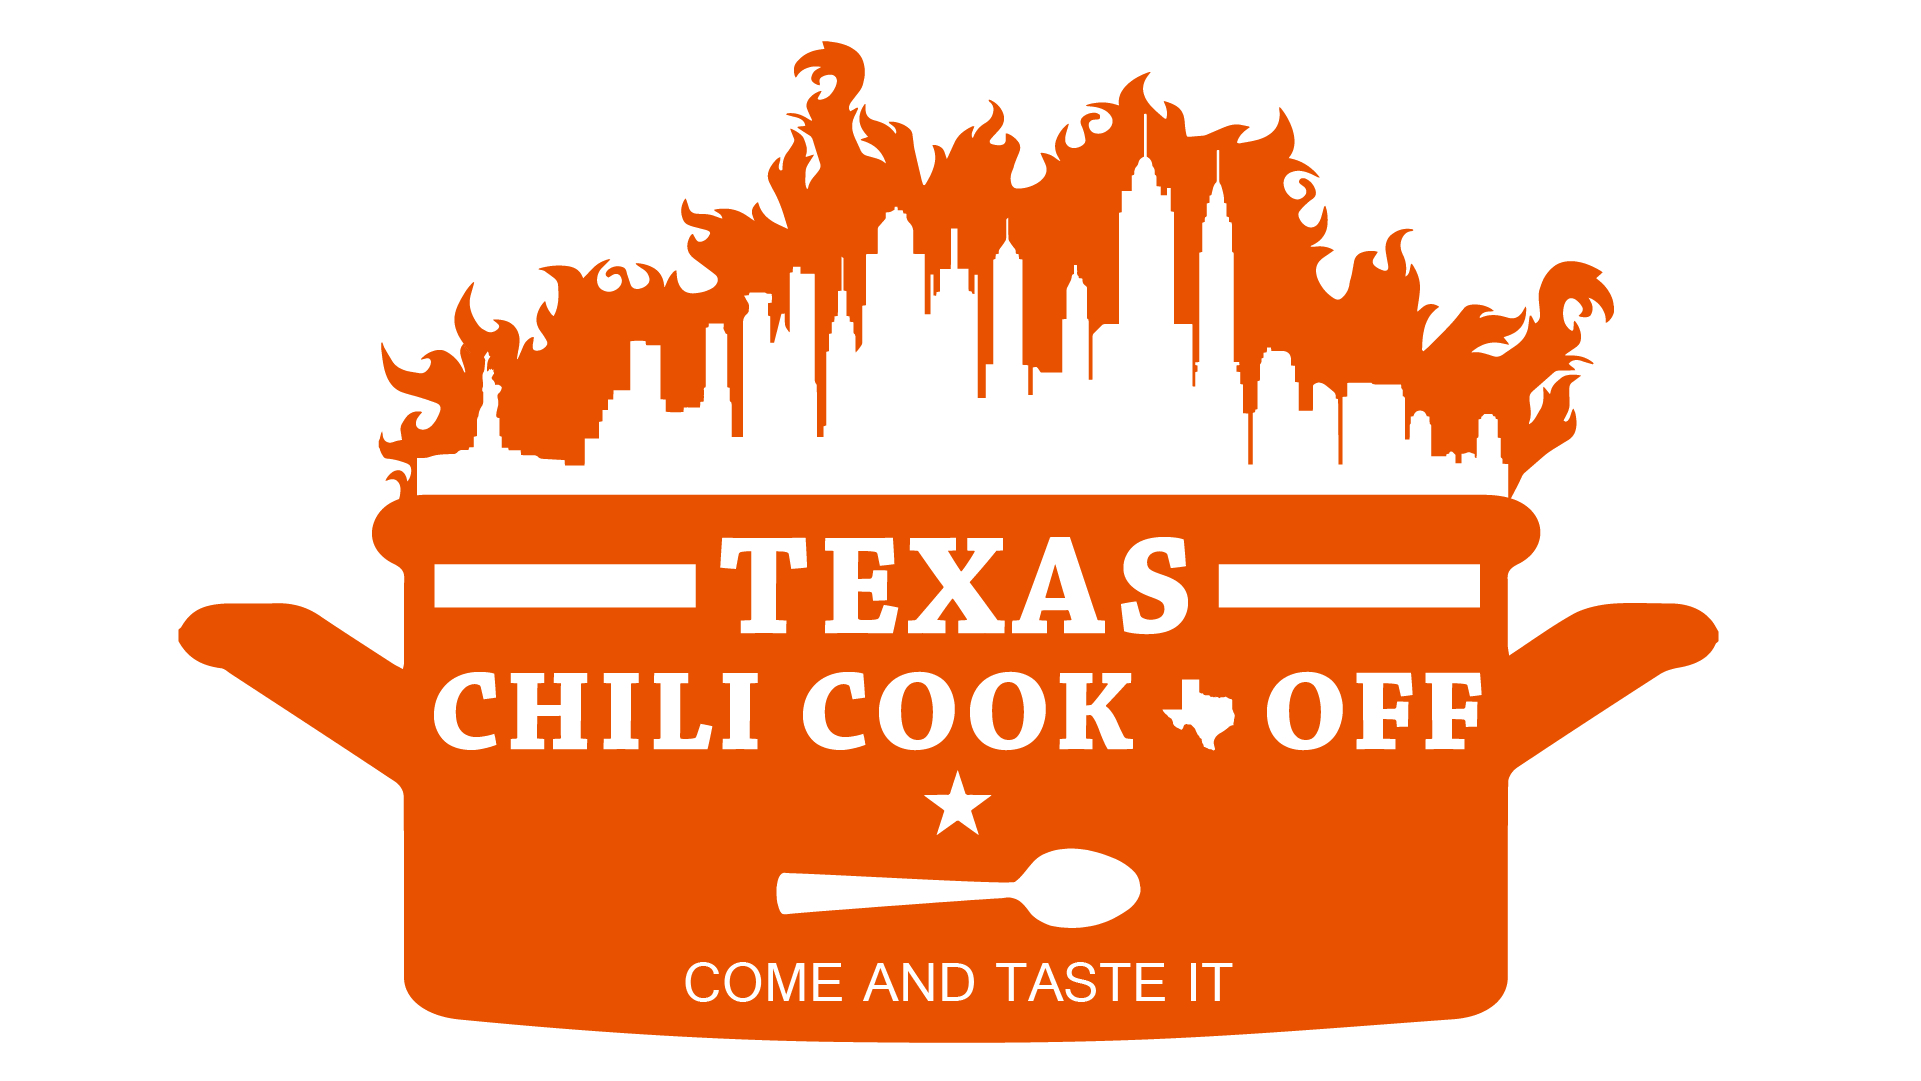 Texas Chili Cook-off Chapter Banner